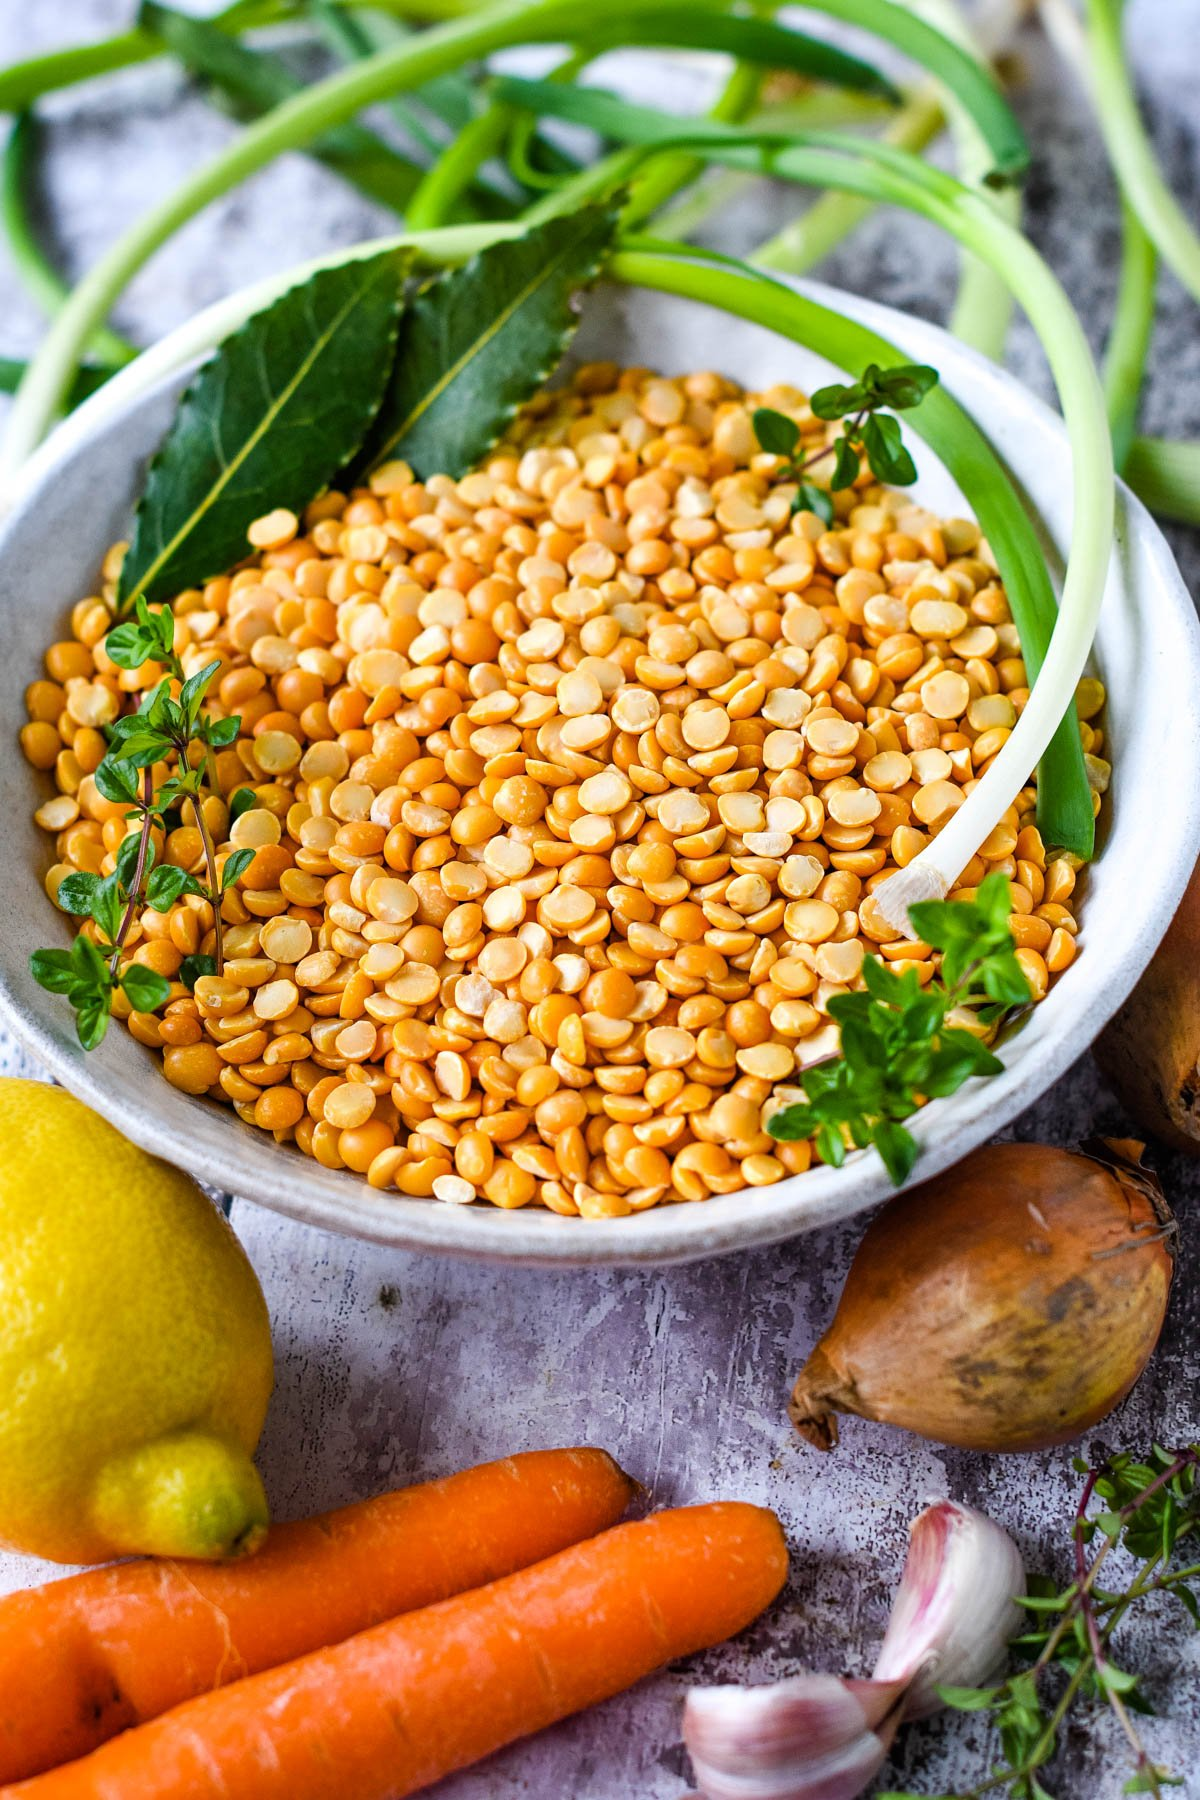 ingredients - yellow split peas, bay leaves, thyme, olilve oil, carrots, onions, garlic, lemon and spring onions